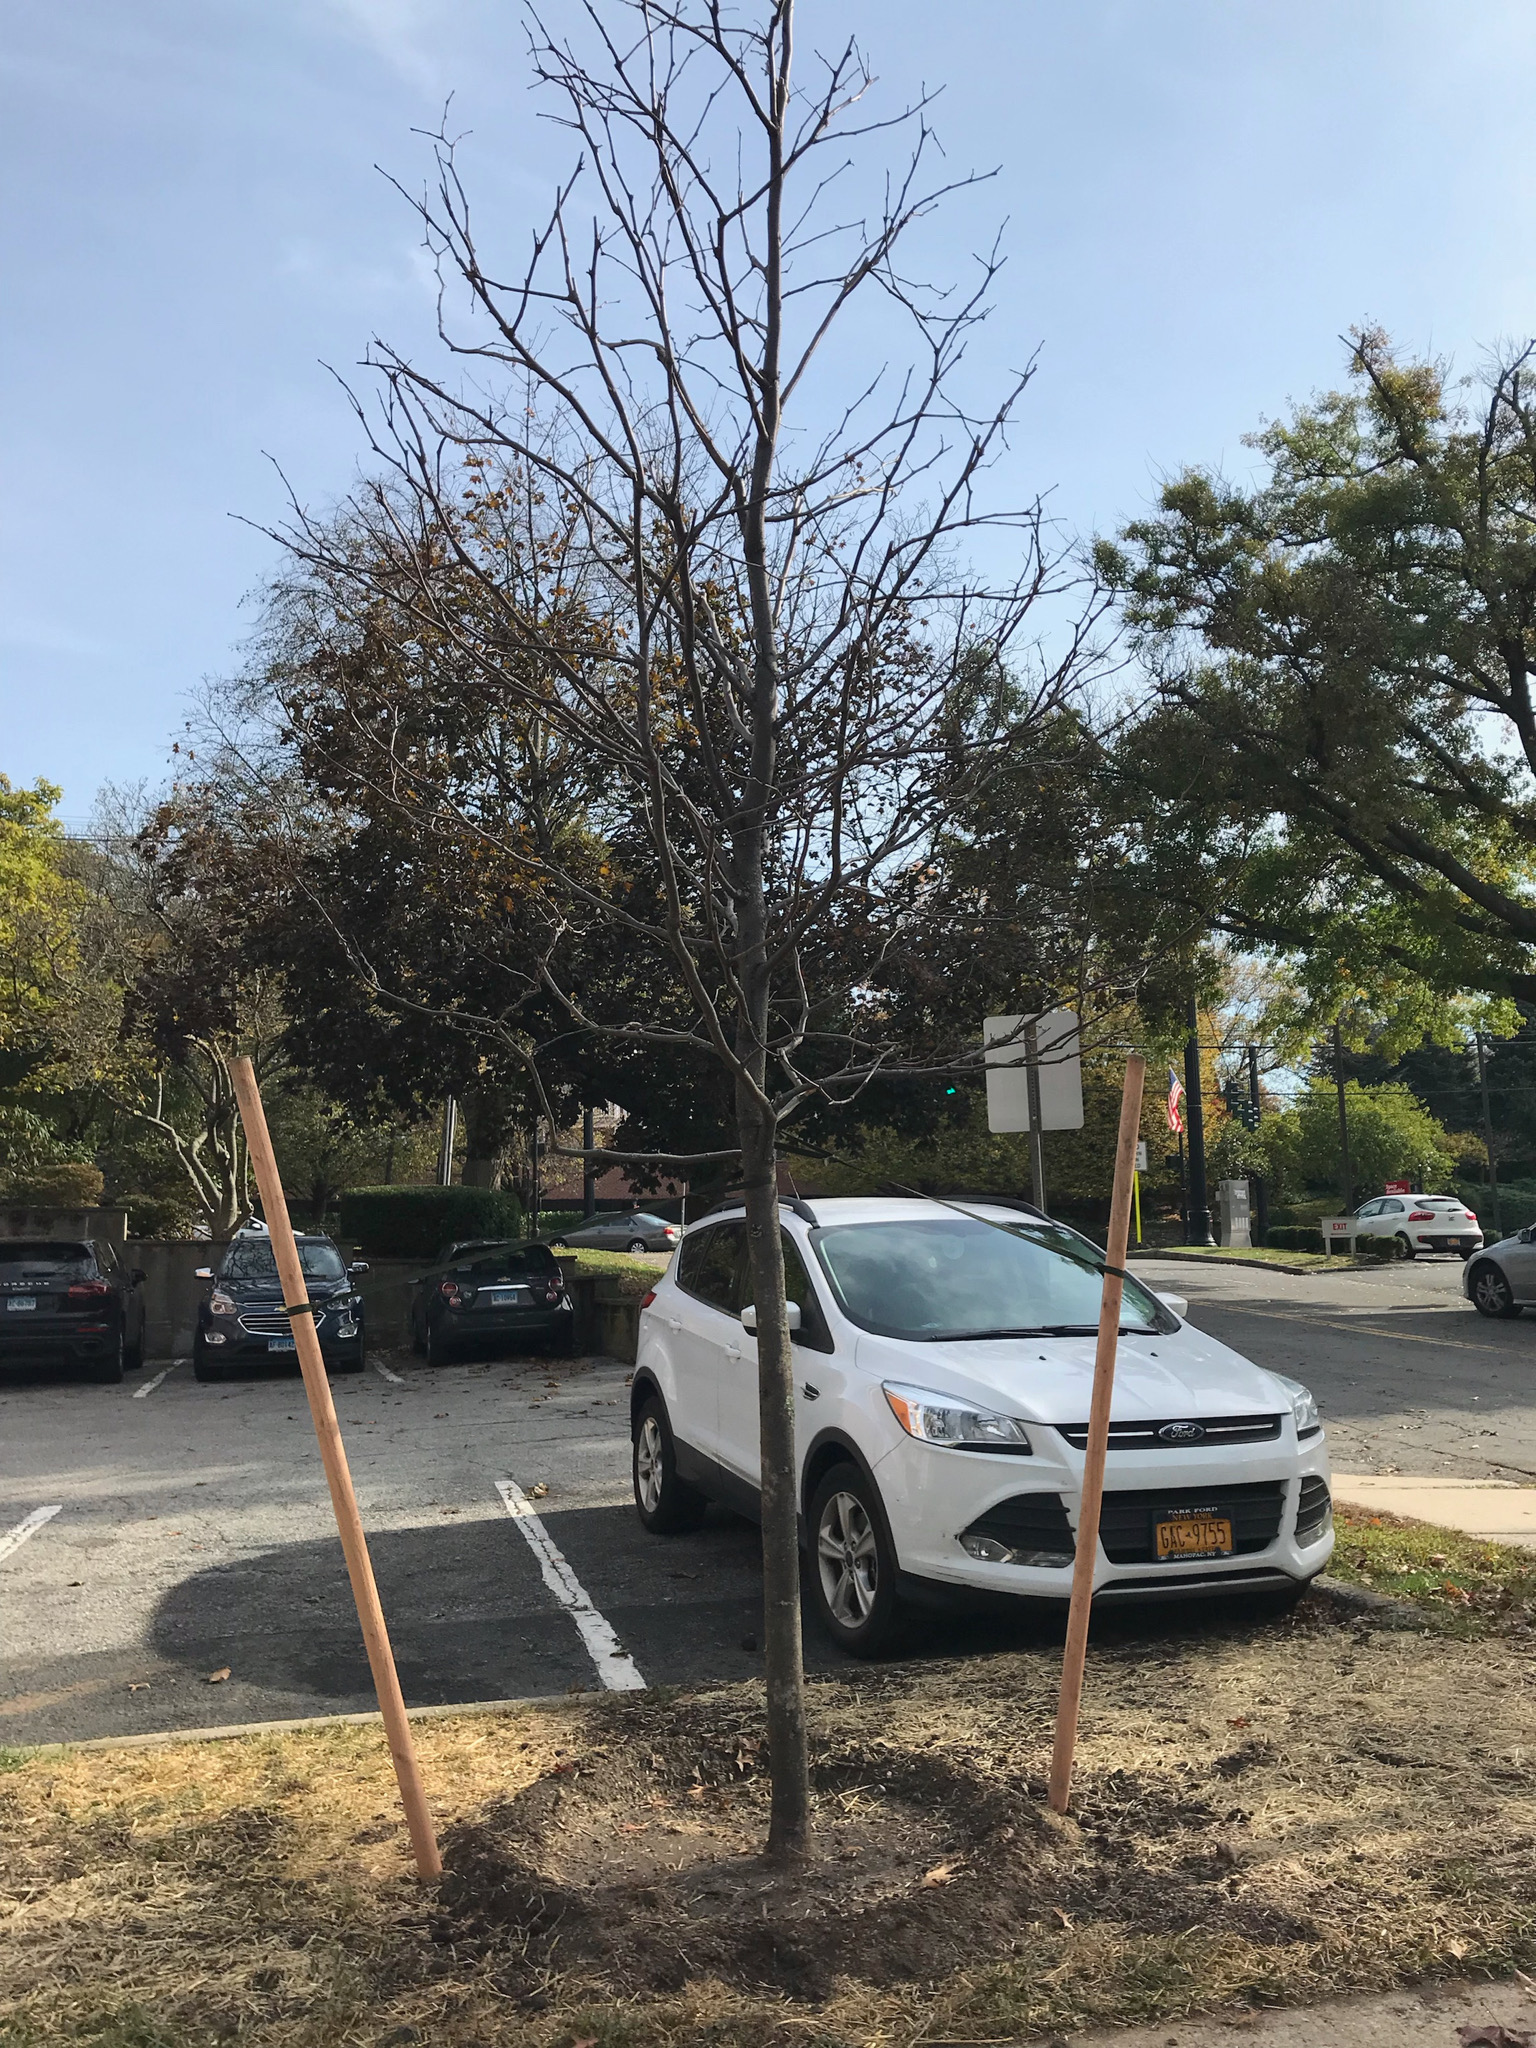 City Hall Parking Lot: Thornless Honey Locust